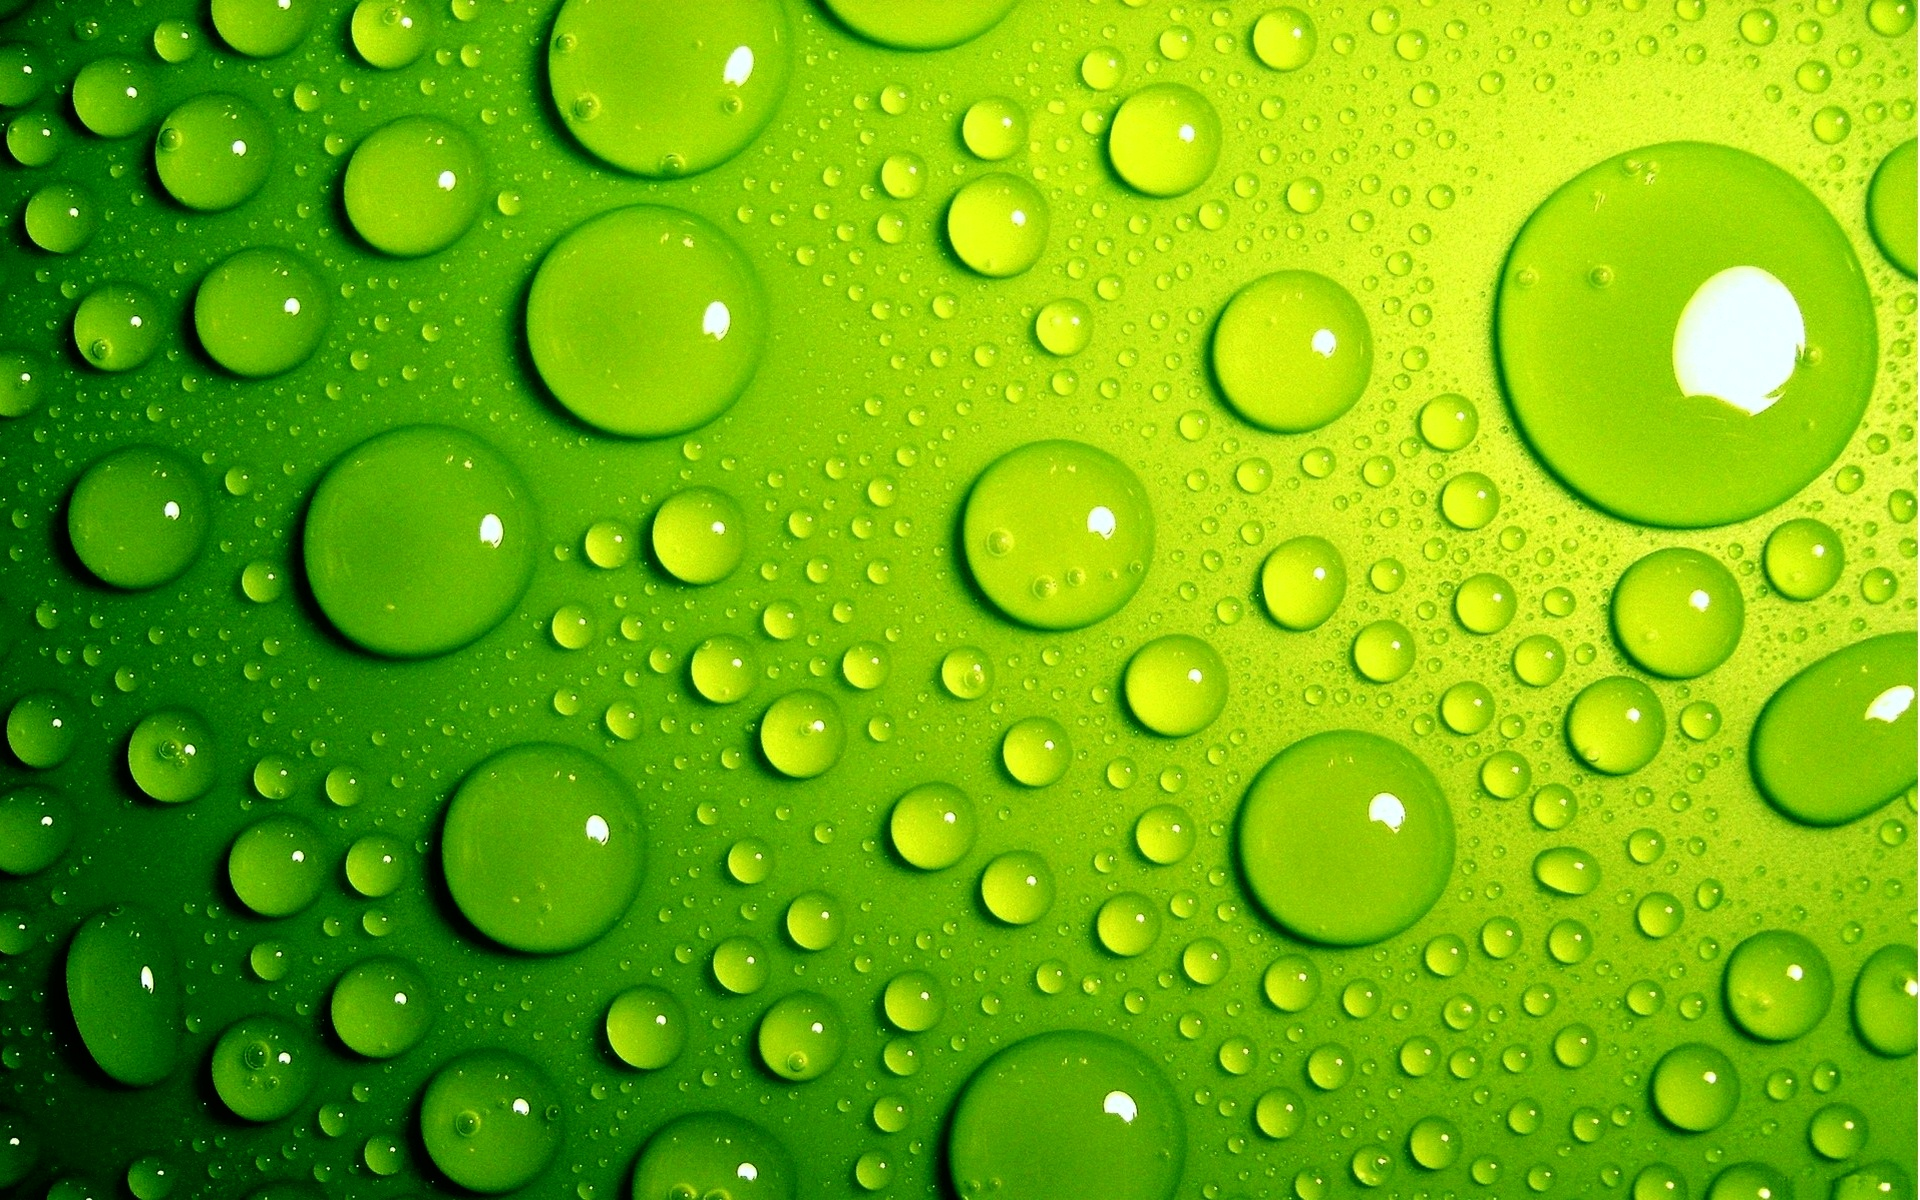 3D & Abstract Green Bubbles wallpapers (Desktop, Phone, Tablet ...